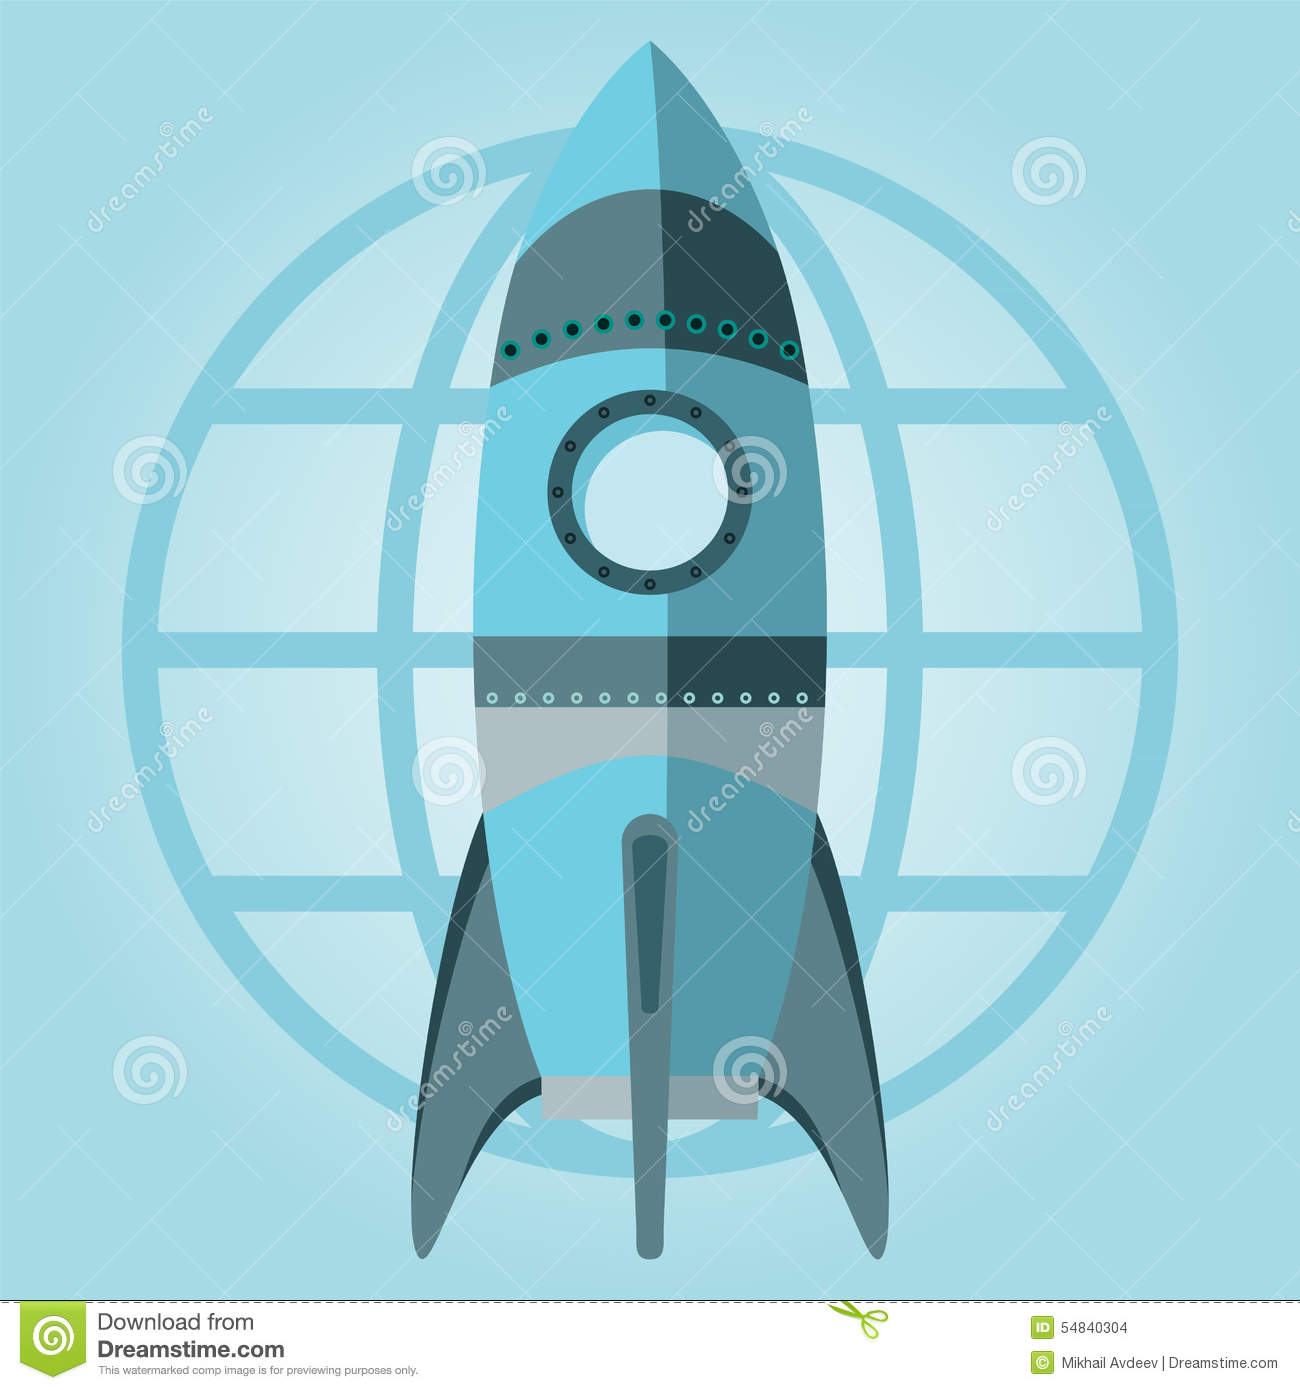 new business project startup symbol rocket space ship launch icon design template on grey. Black Bedroom Furniture Sets. Home Design Ideas